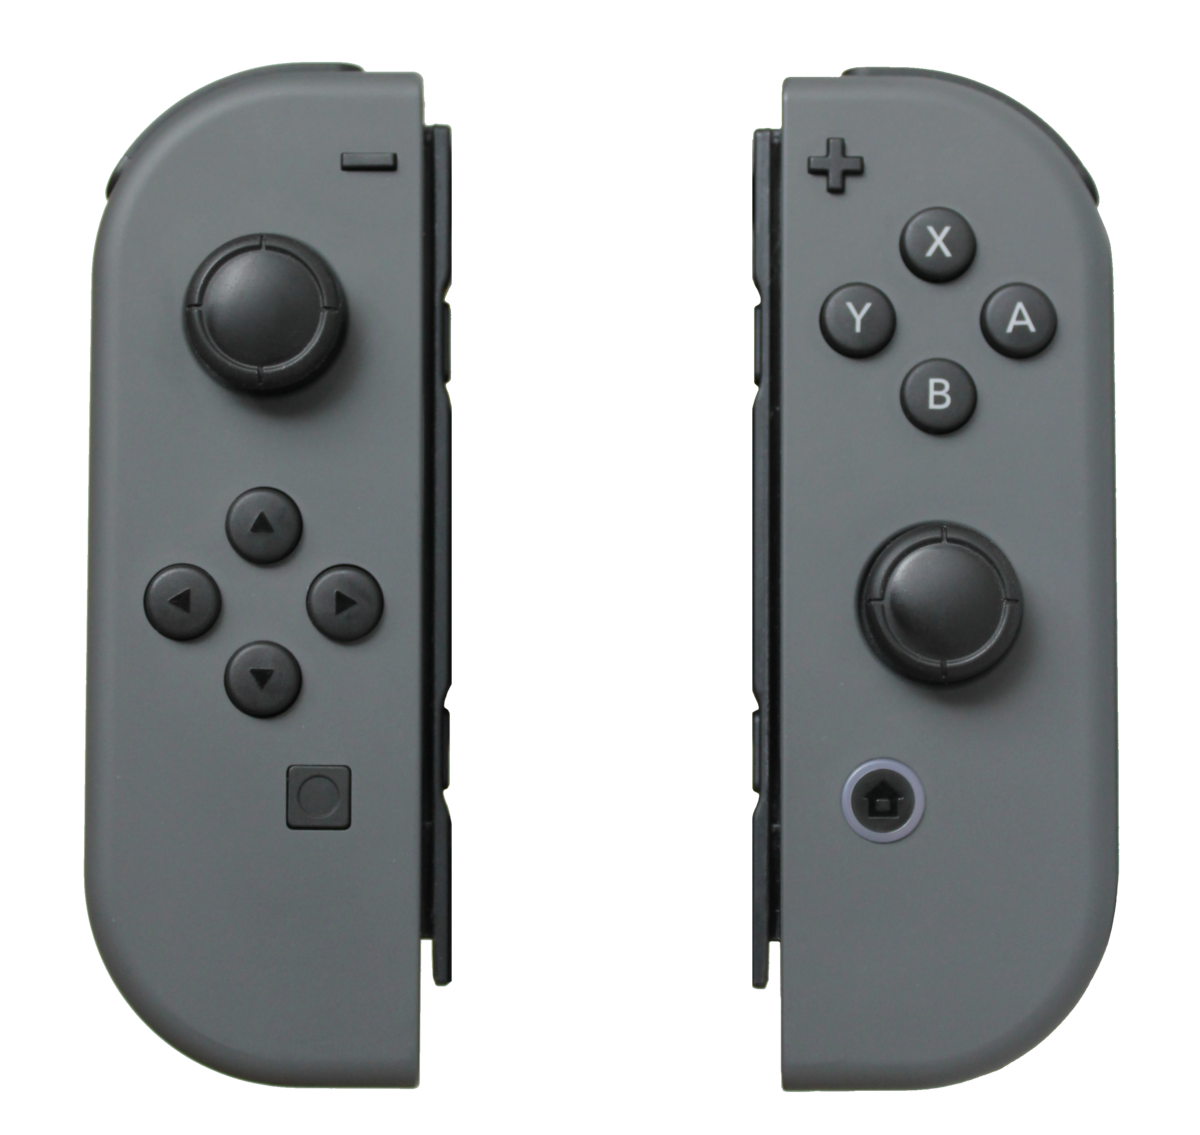 Shoulder buttons png. Joy con wikipedia